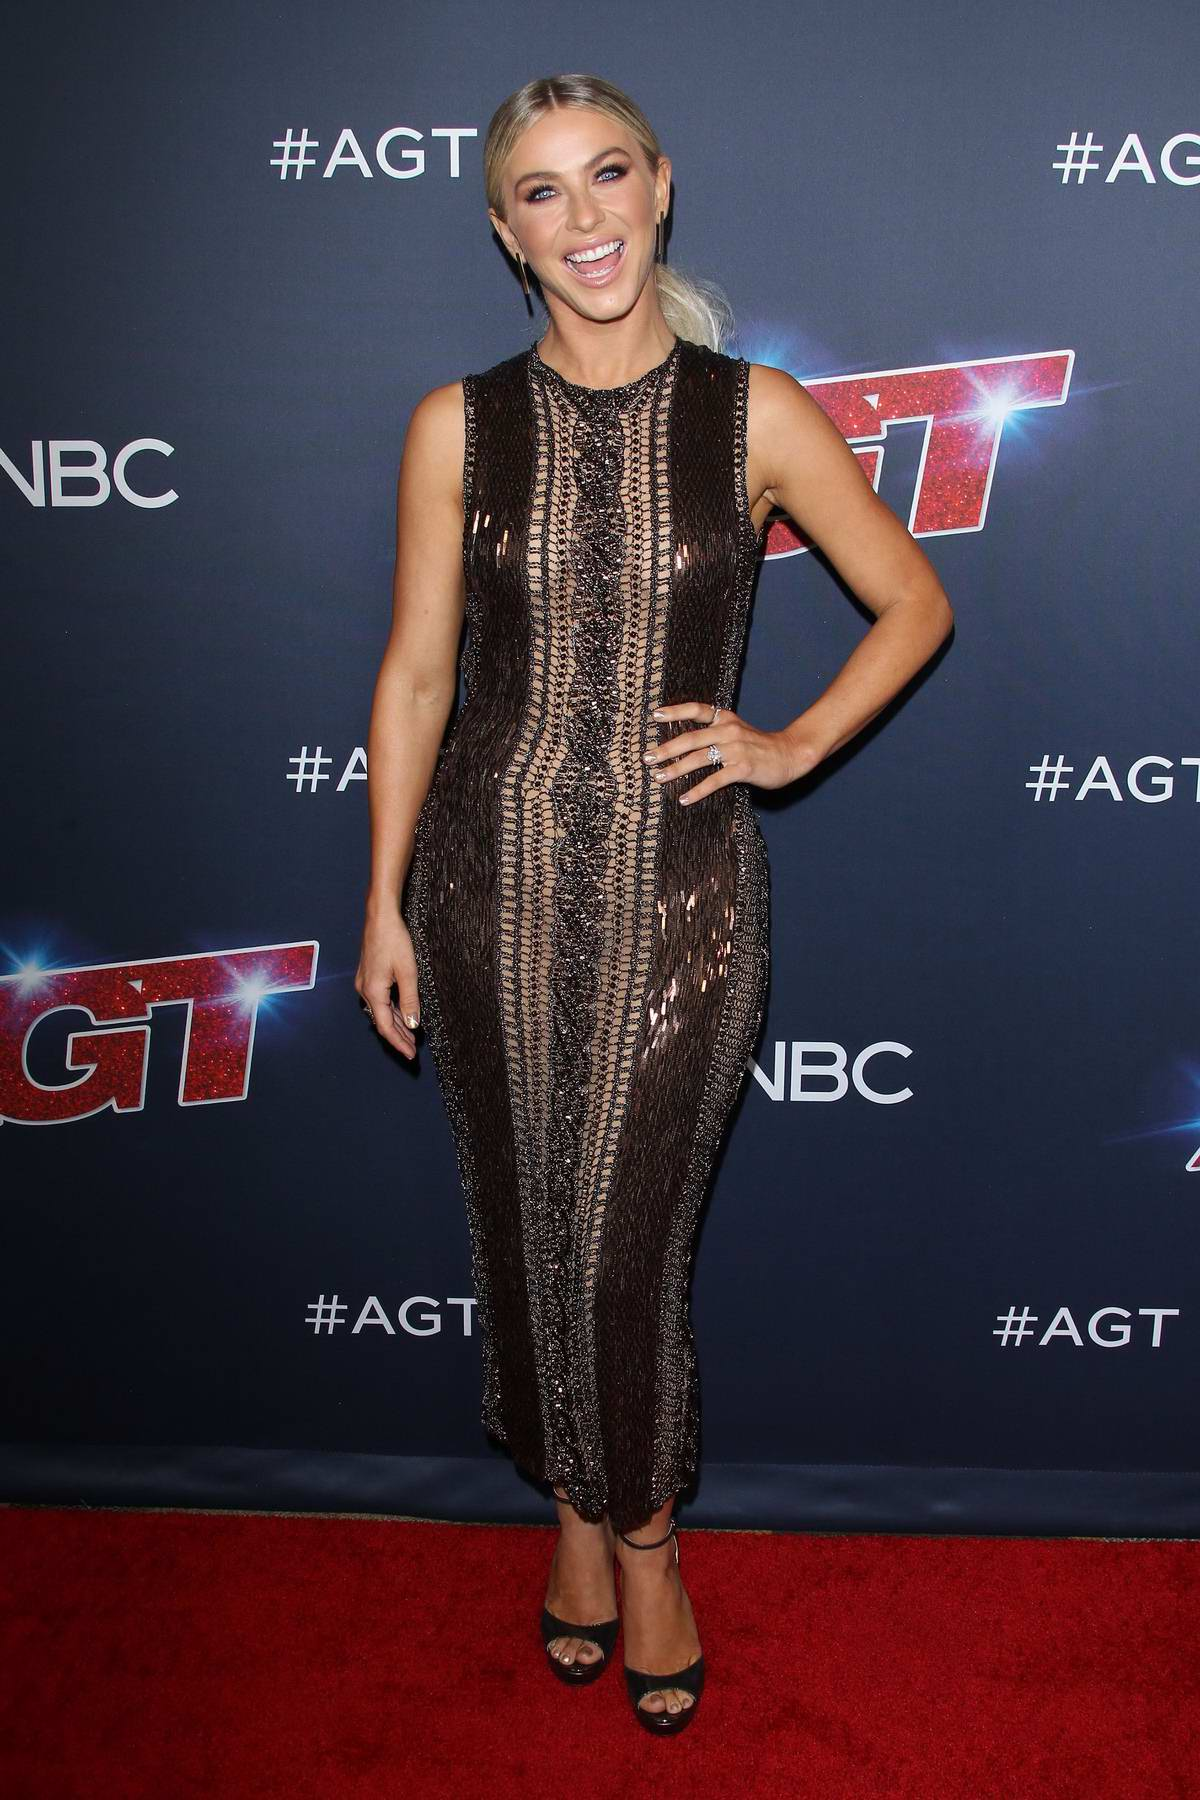 Julianne Hough attends 'America's Got Talent' Season 14 Live Show Red Carpet at Dolby Theatre in Hollywood, California